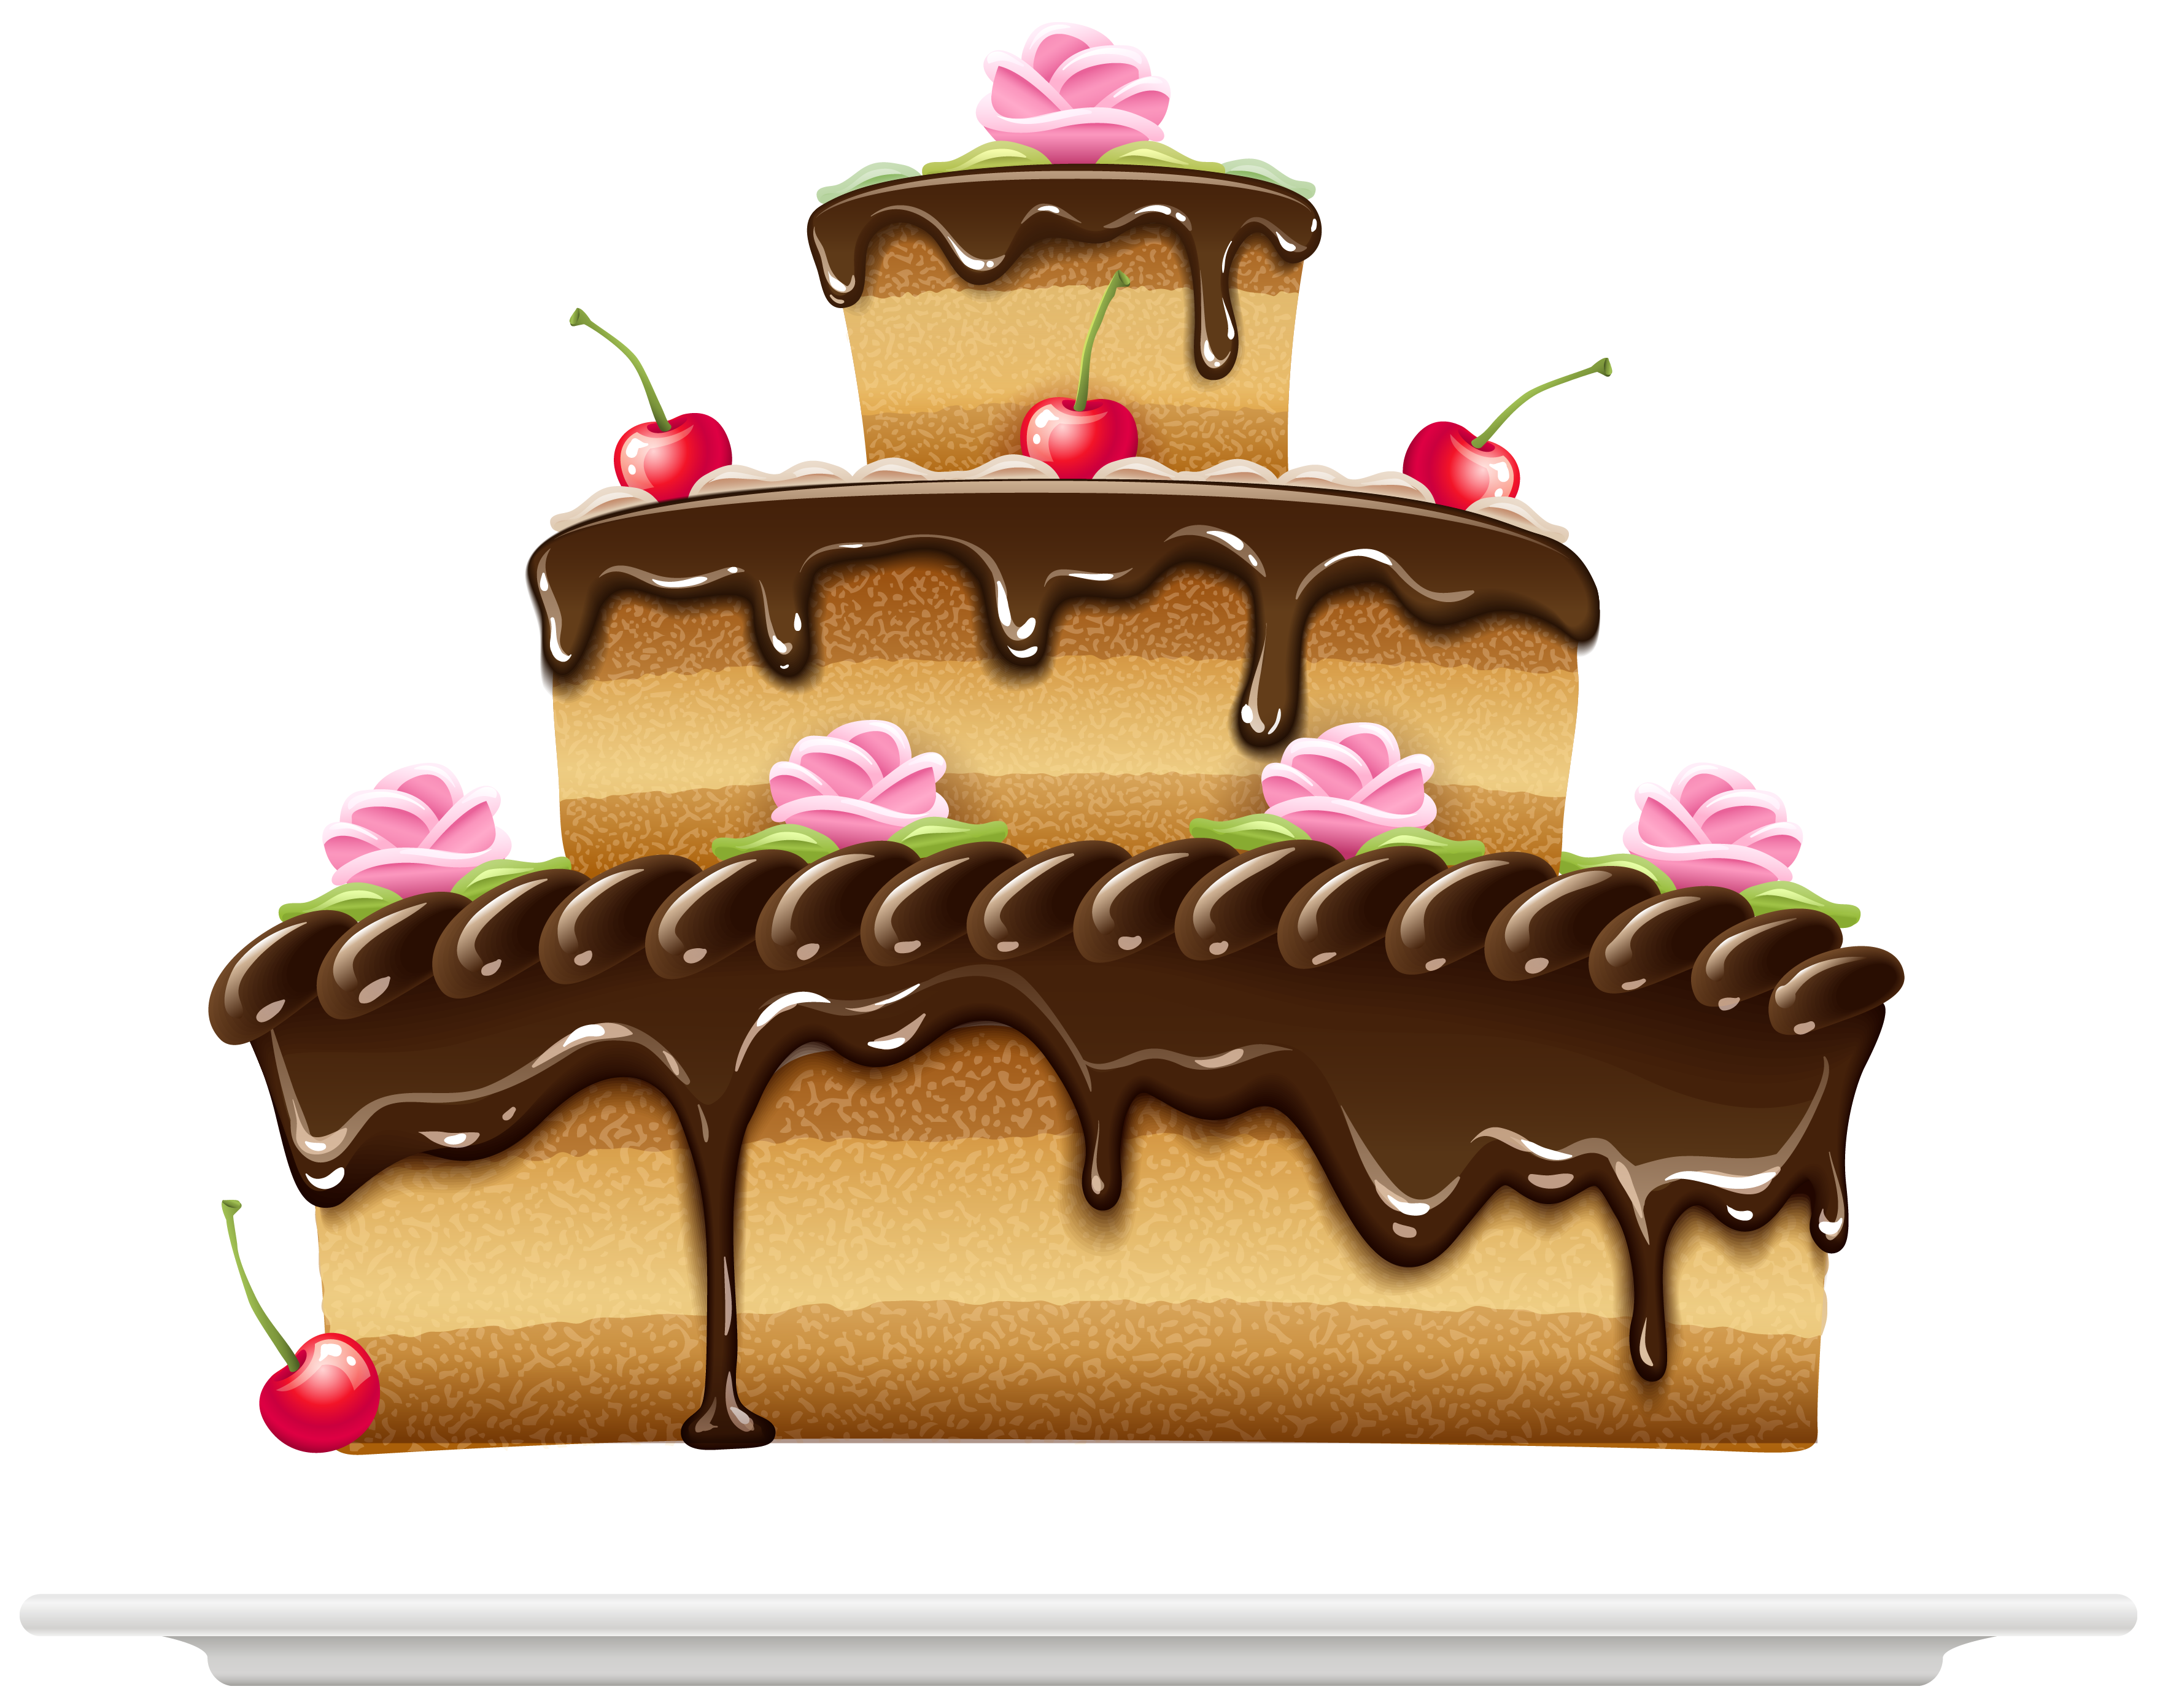 Clipart cake german chocolate cake. Png images free download